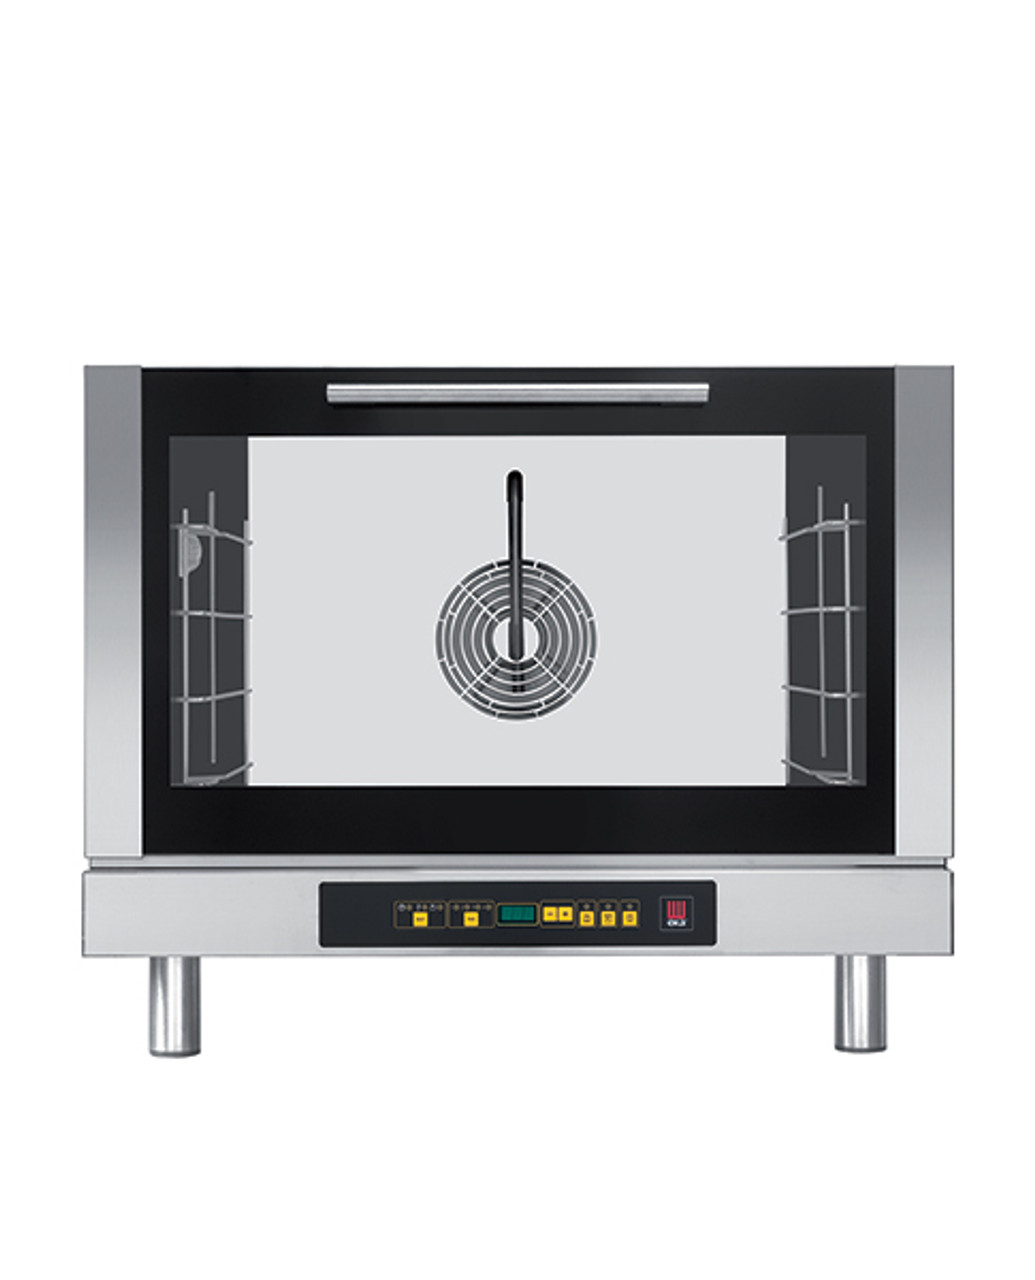 """Eka Evolution 4-tray full-size (18x26) electric convection oven with humidity with digital controls. Top-opening (bottom-hinged) door. Operates on 208v single-phase power chose single or three-phase option. Includes four 18"""" x 26"""" grids, electrical cord, components necessary to connect to water supply, and standard drain components."""